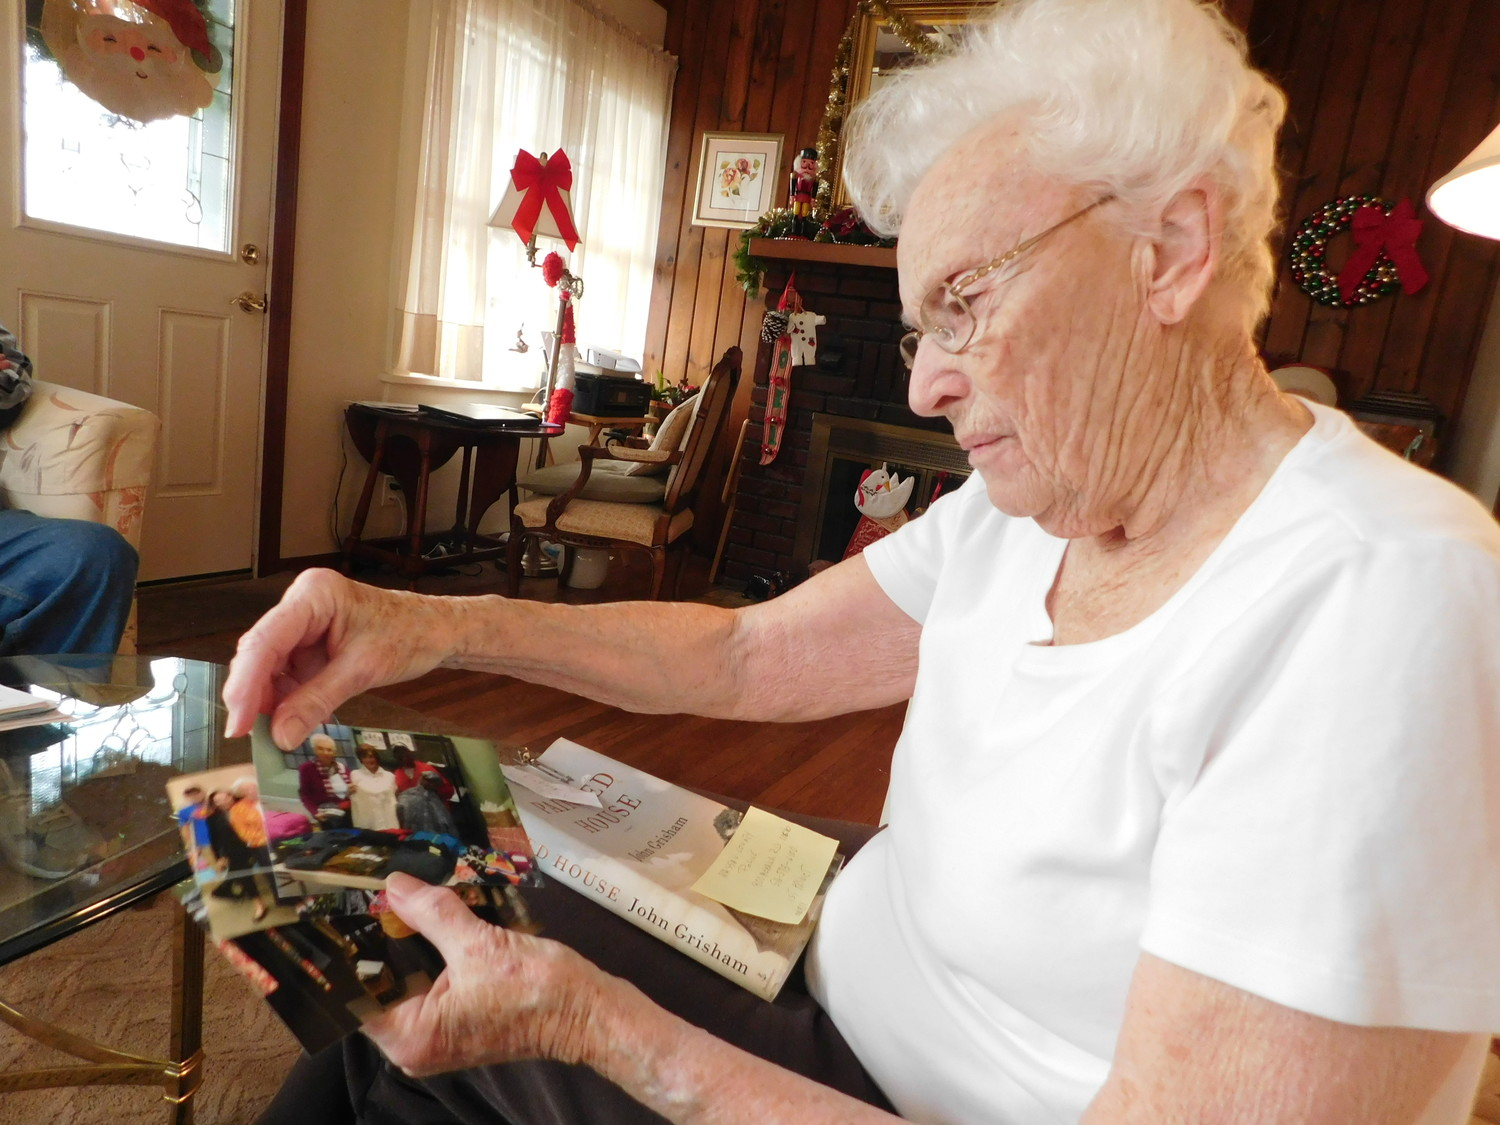 Gloria Chapman thumbed through her photo collection, which details more than two decades of volunteering to help Nassau County's needy.